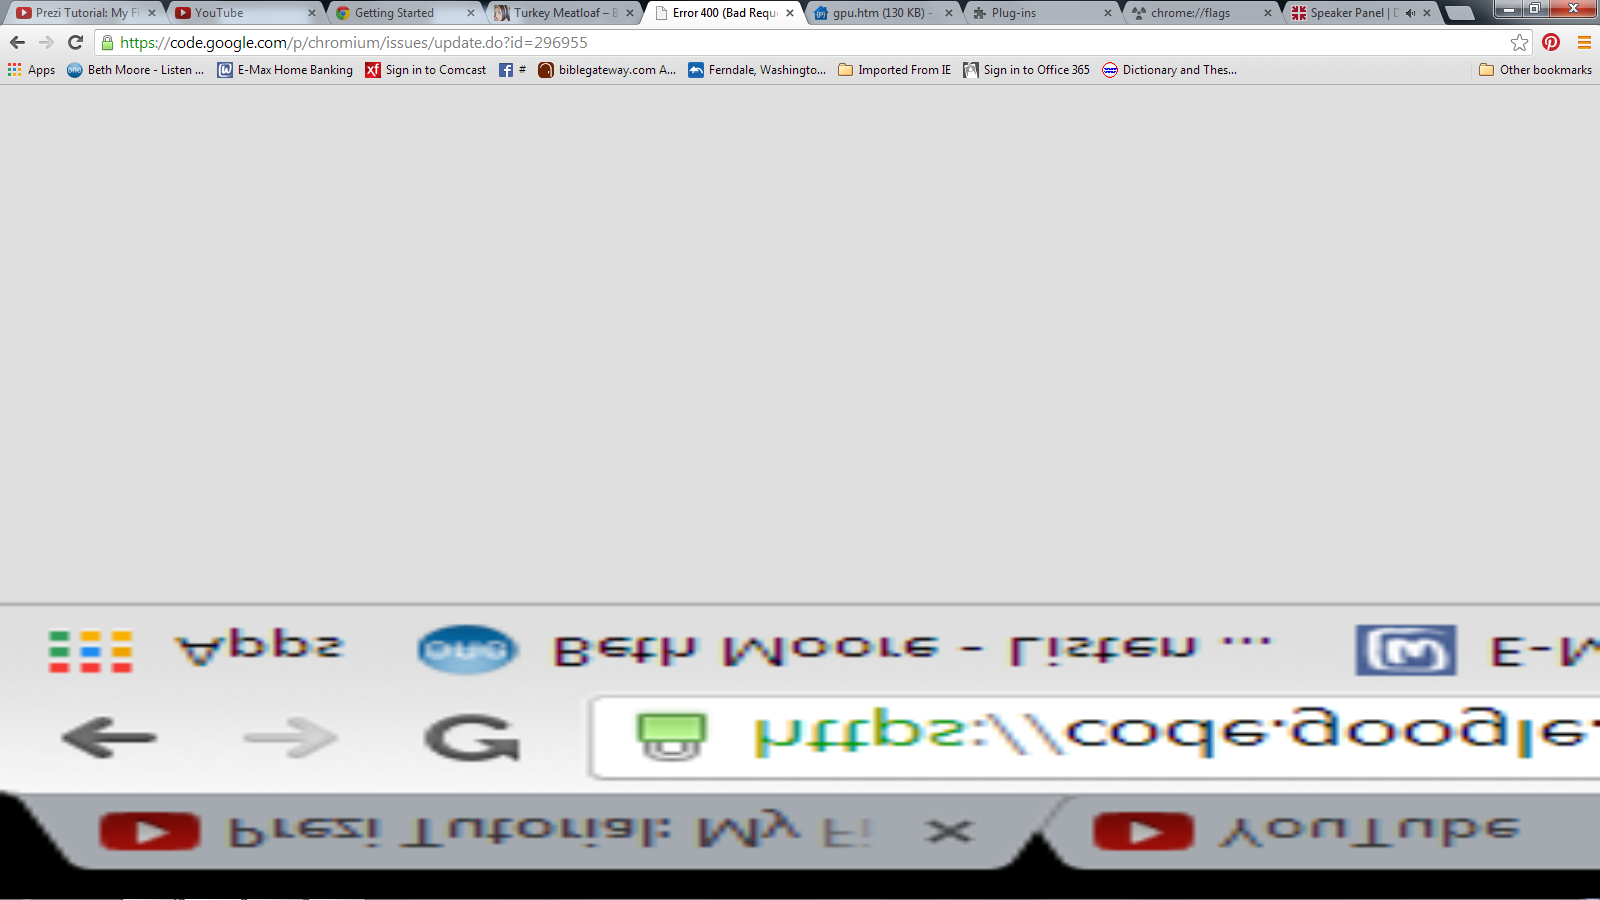 My text in Chrome is like a mirror, it's upside down